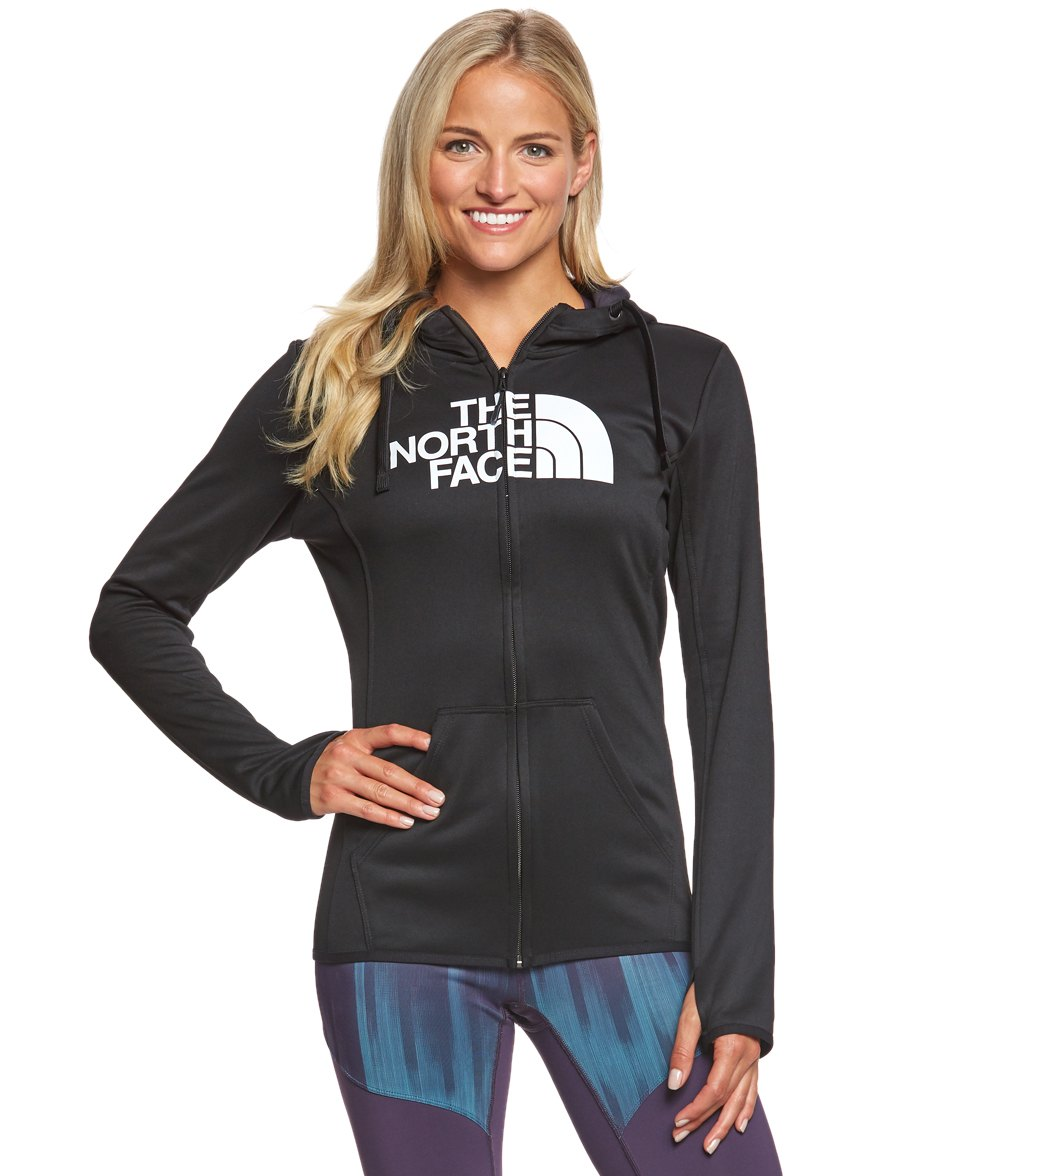 f9bb554cf The North Face Women's Fave Half Dome Full Zip Hoodie